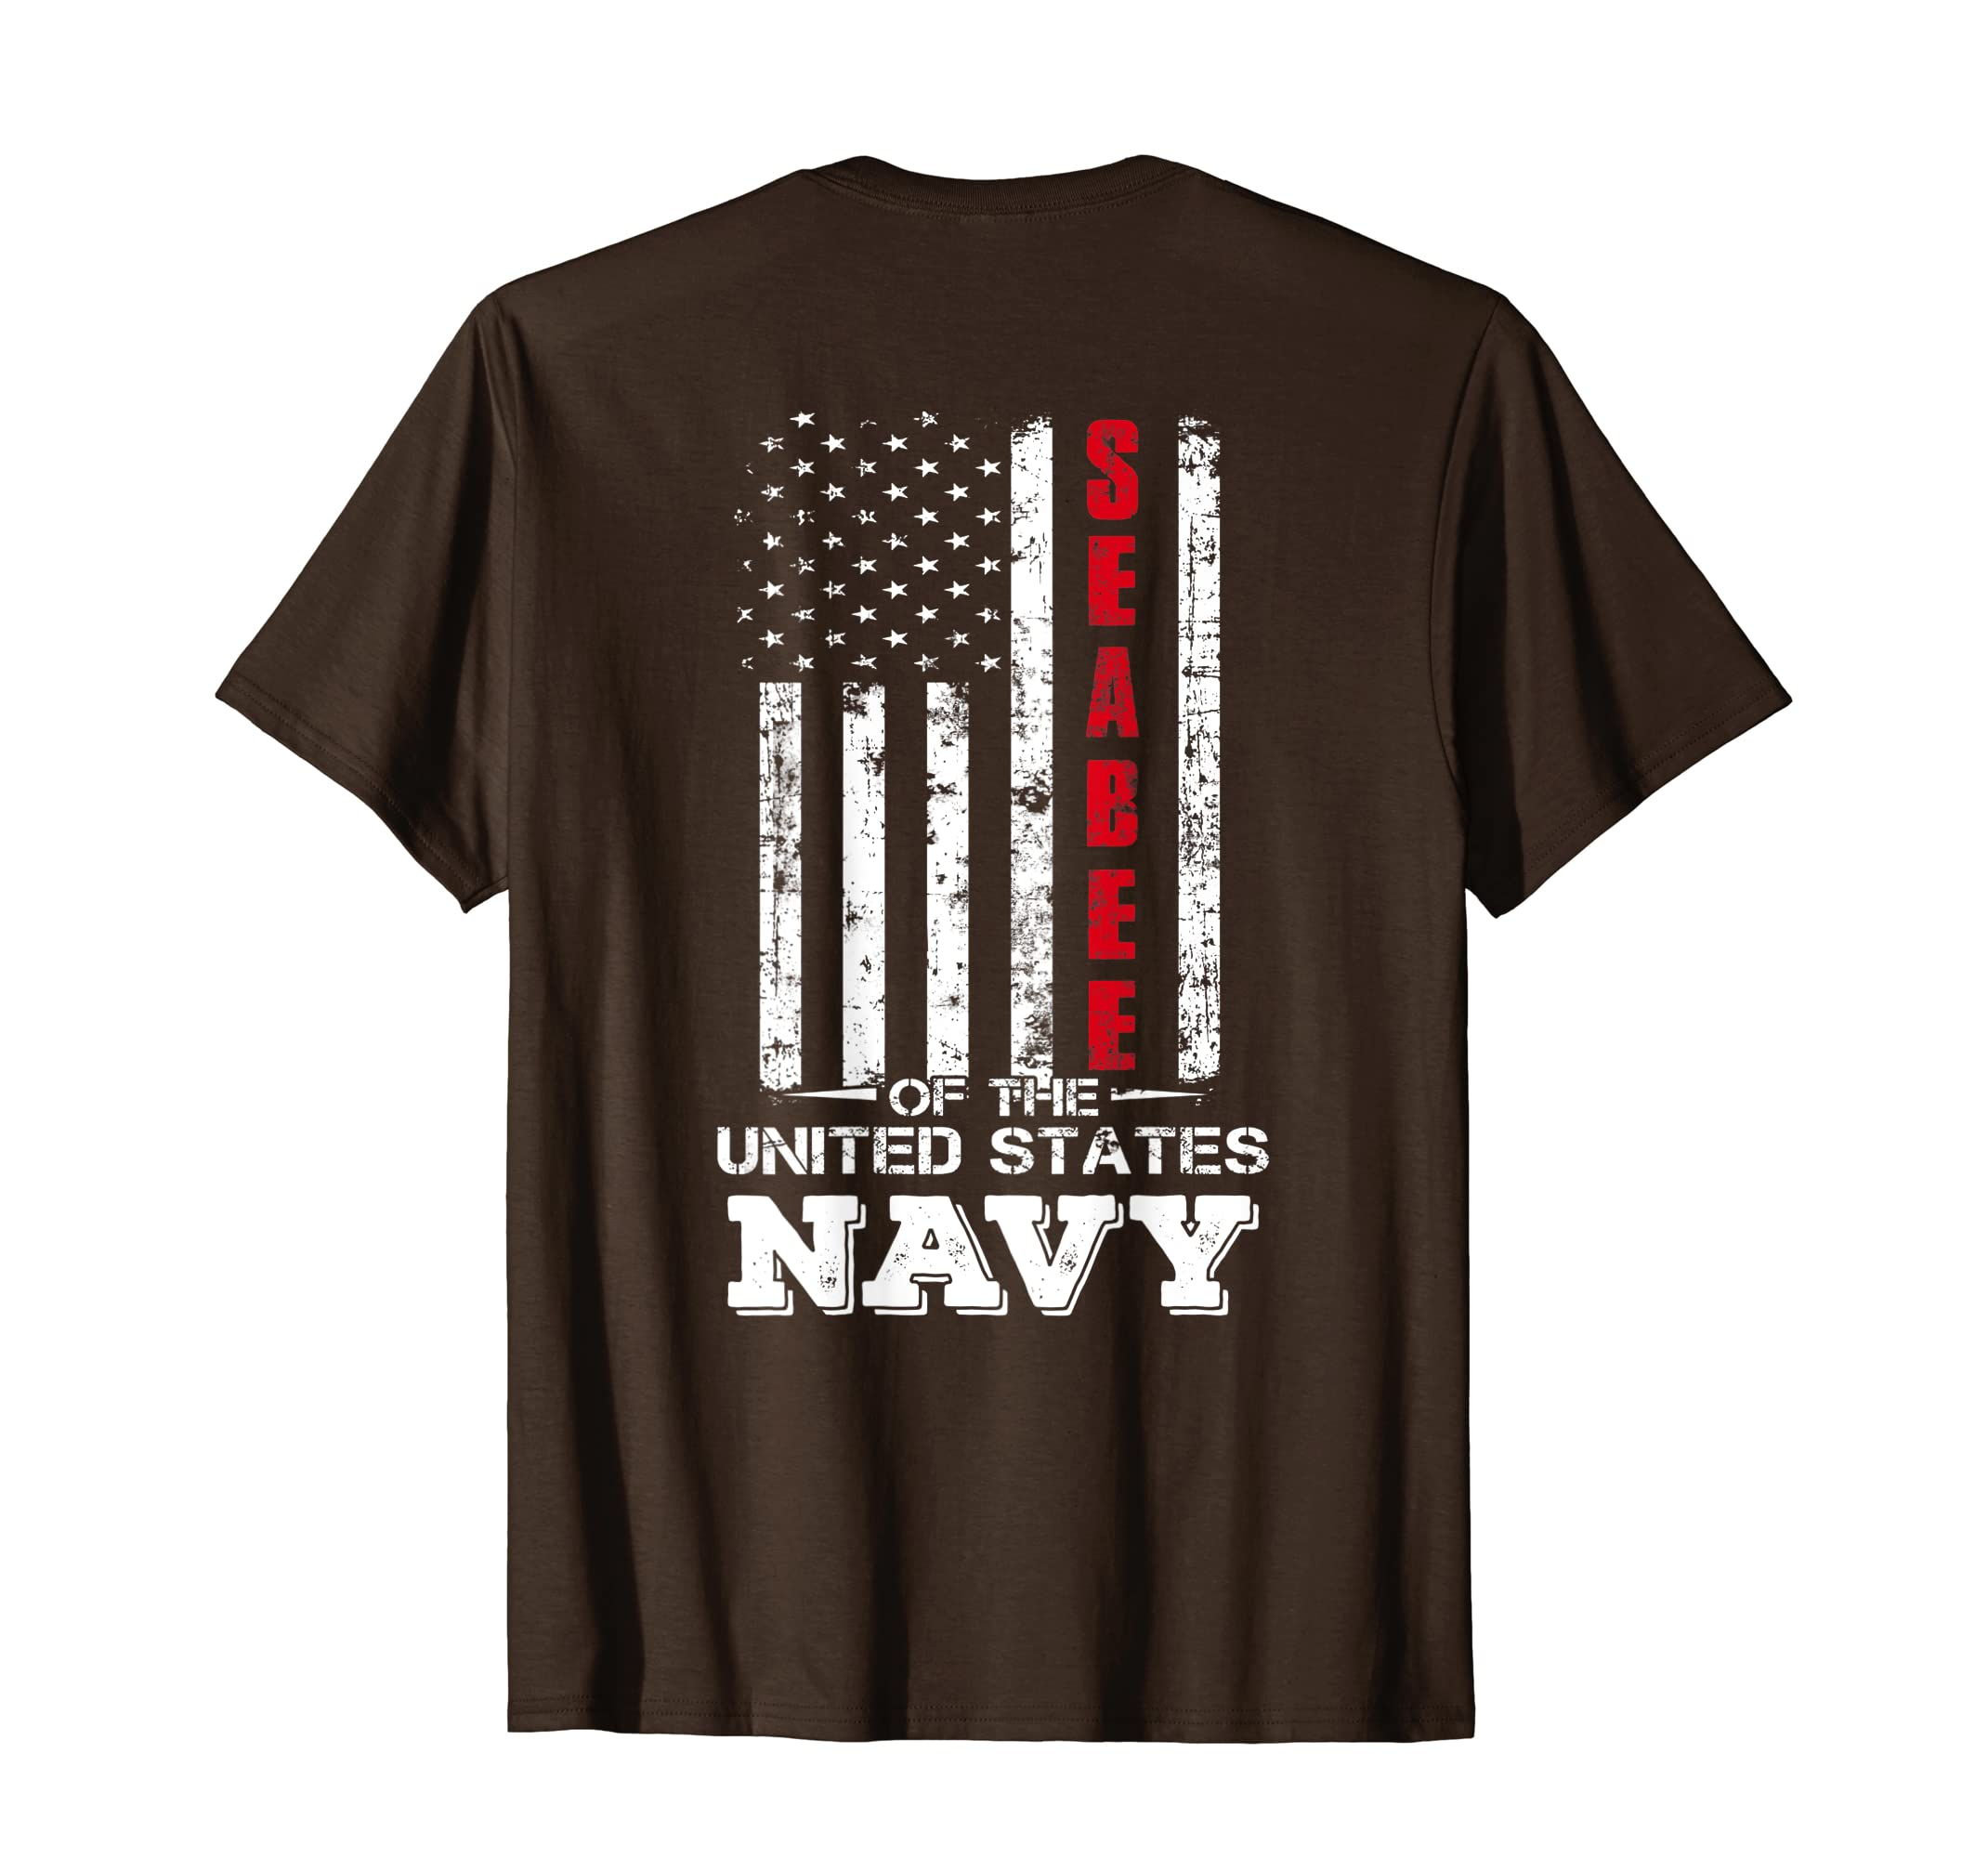 1c3acbe7bf225 Amazon.com: Seabee Of The U.S Navy United States T-Shirt: Clothing